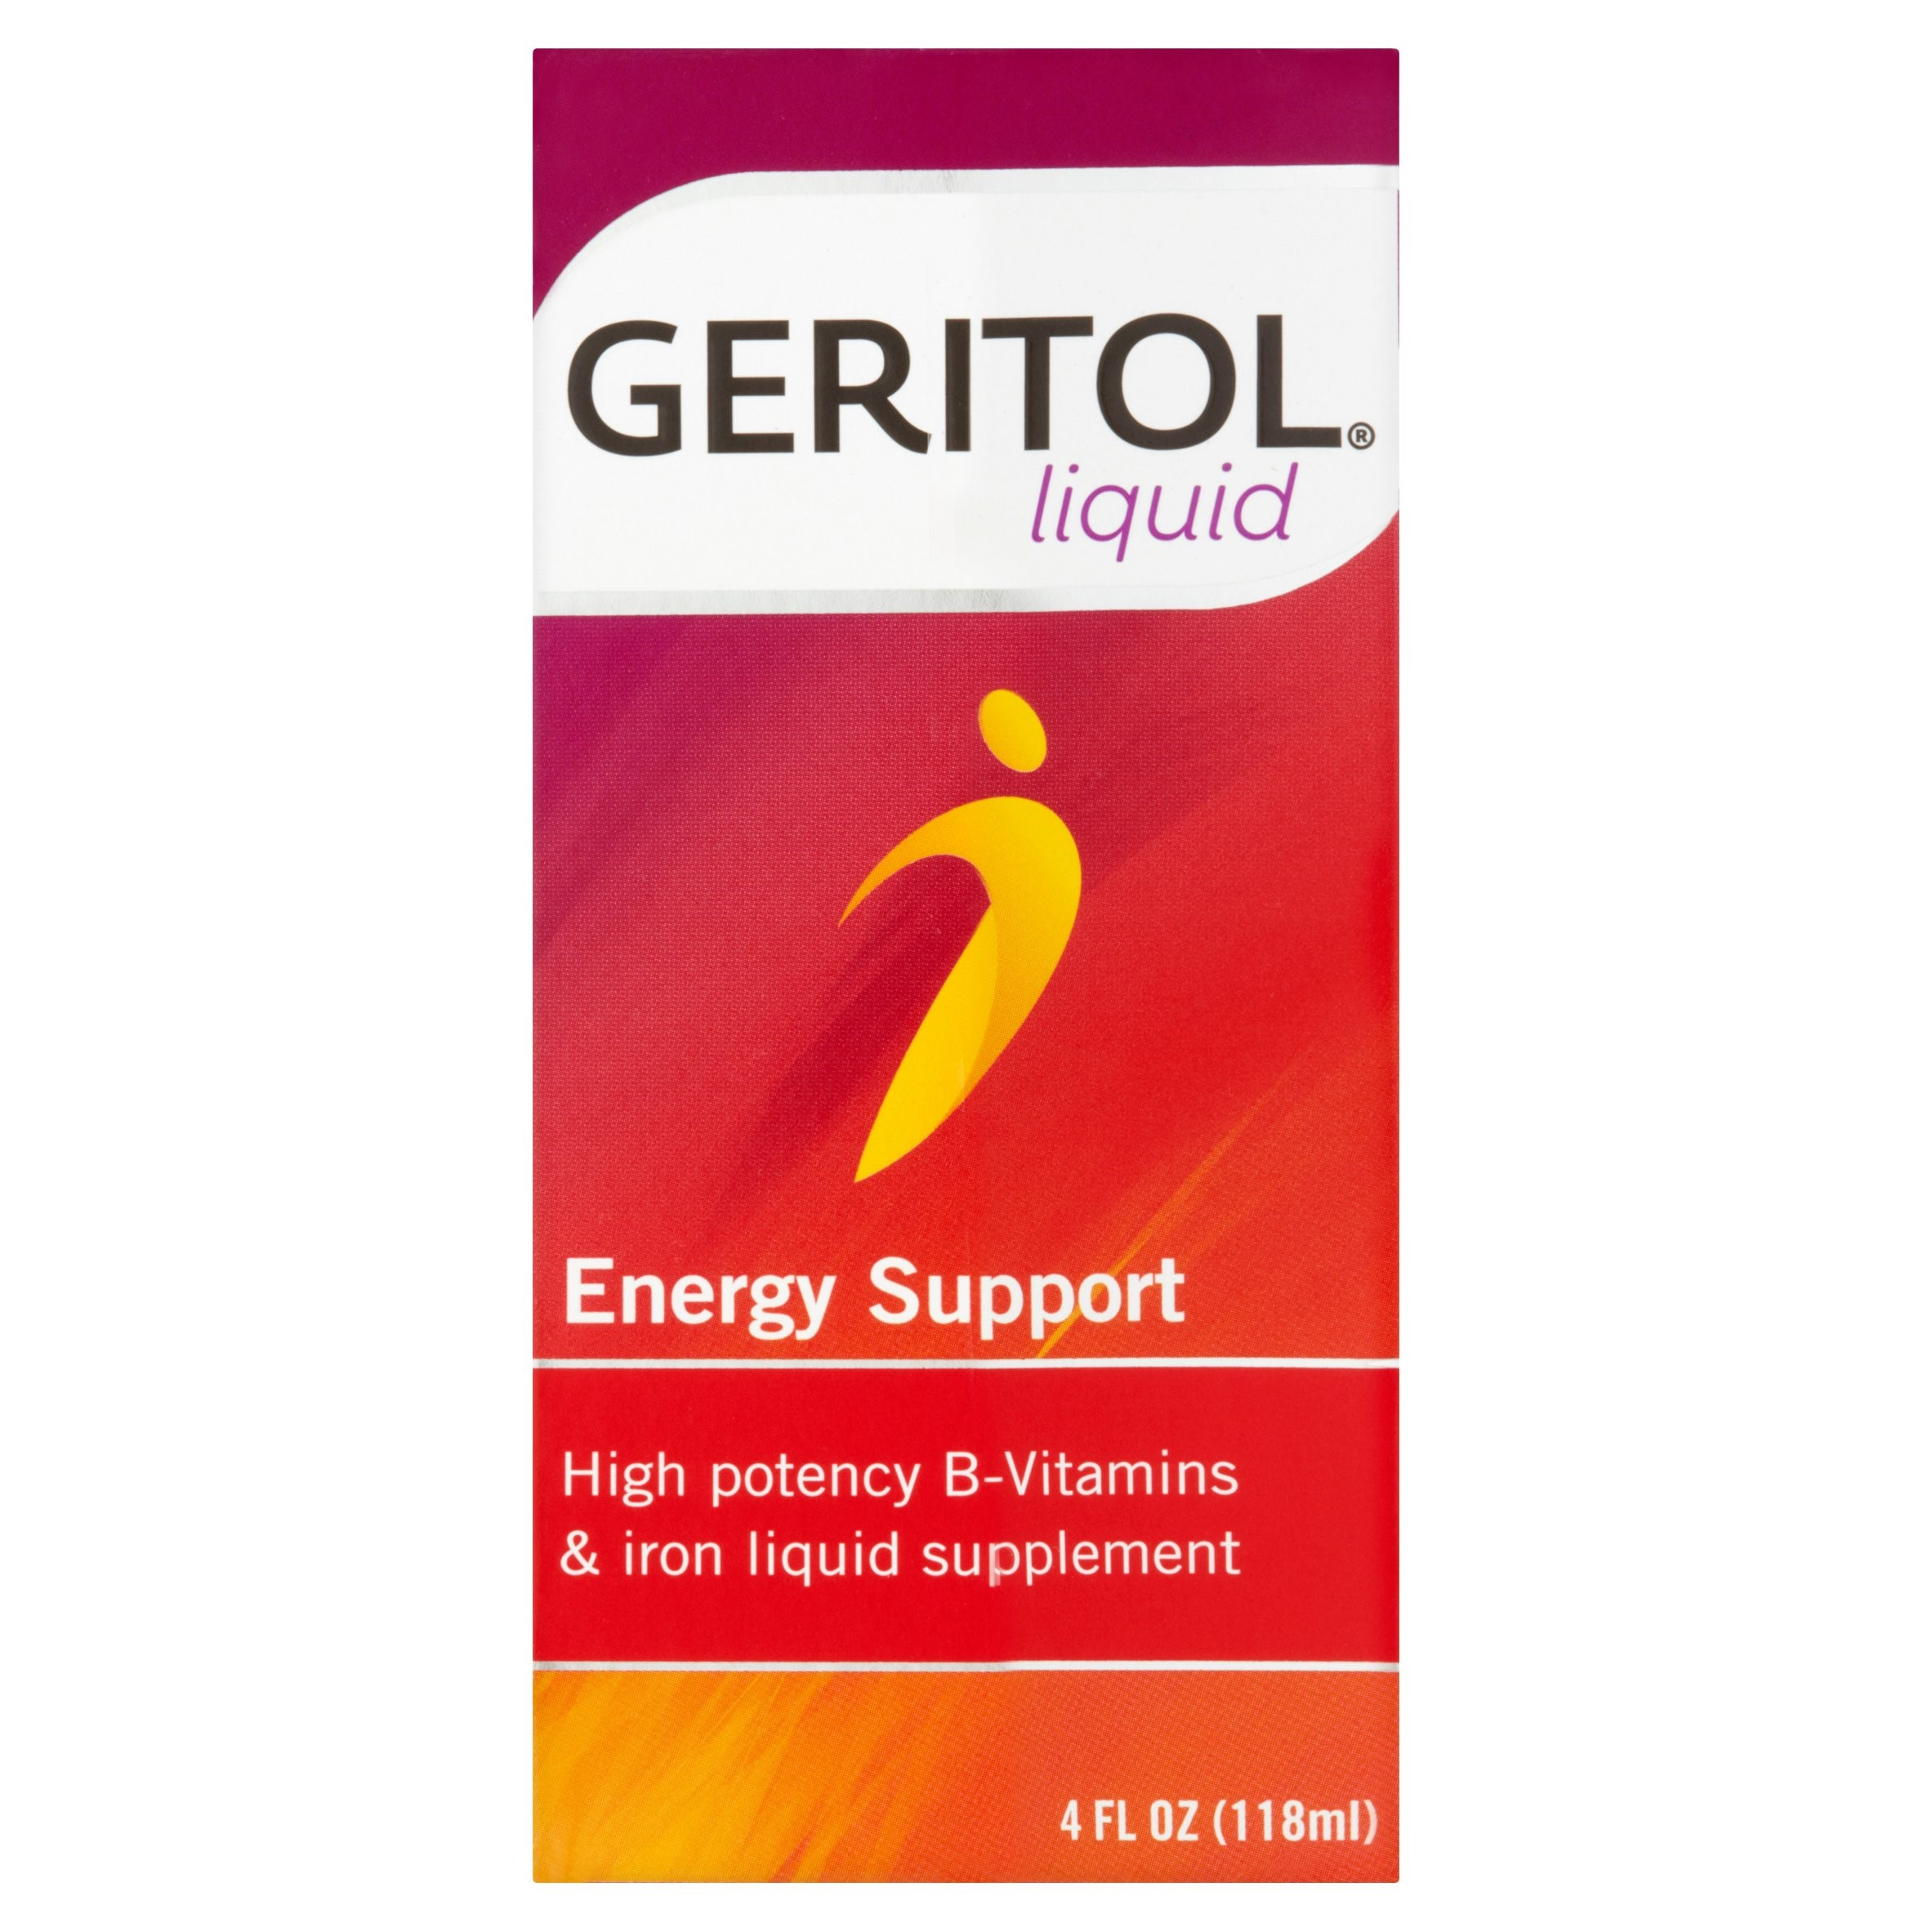 Geritol Liquid Energy Support, 4 fl oz